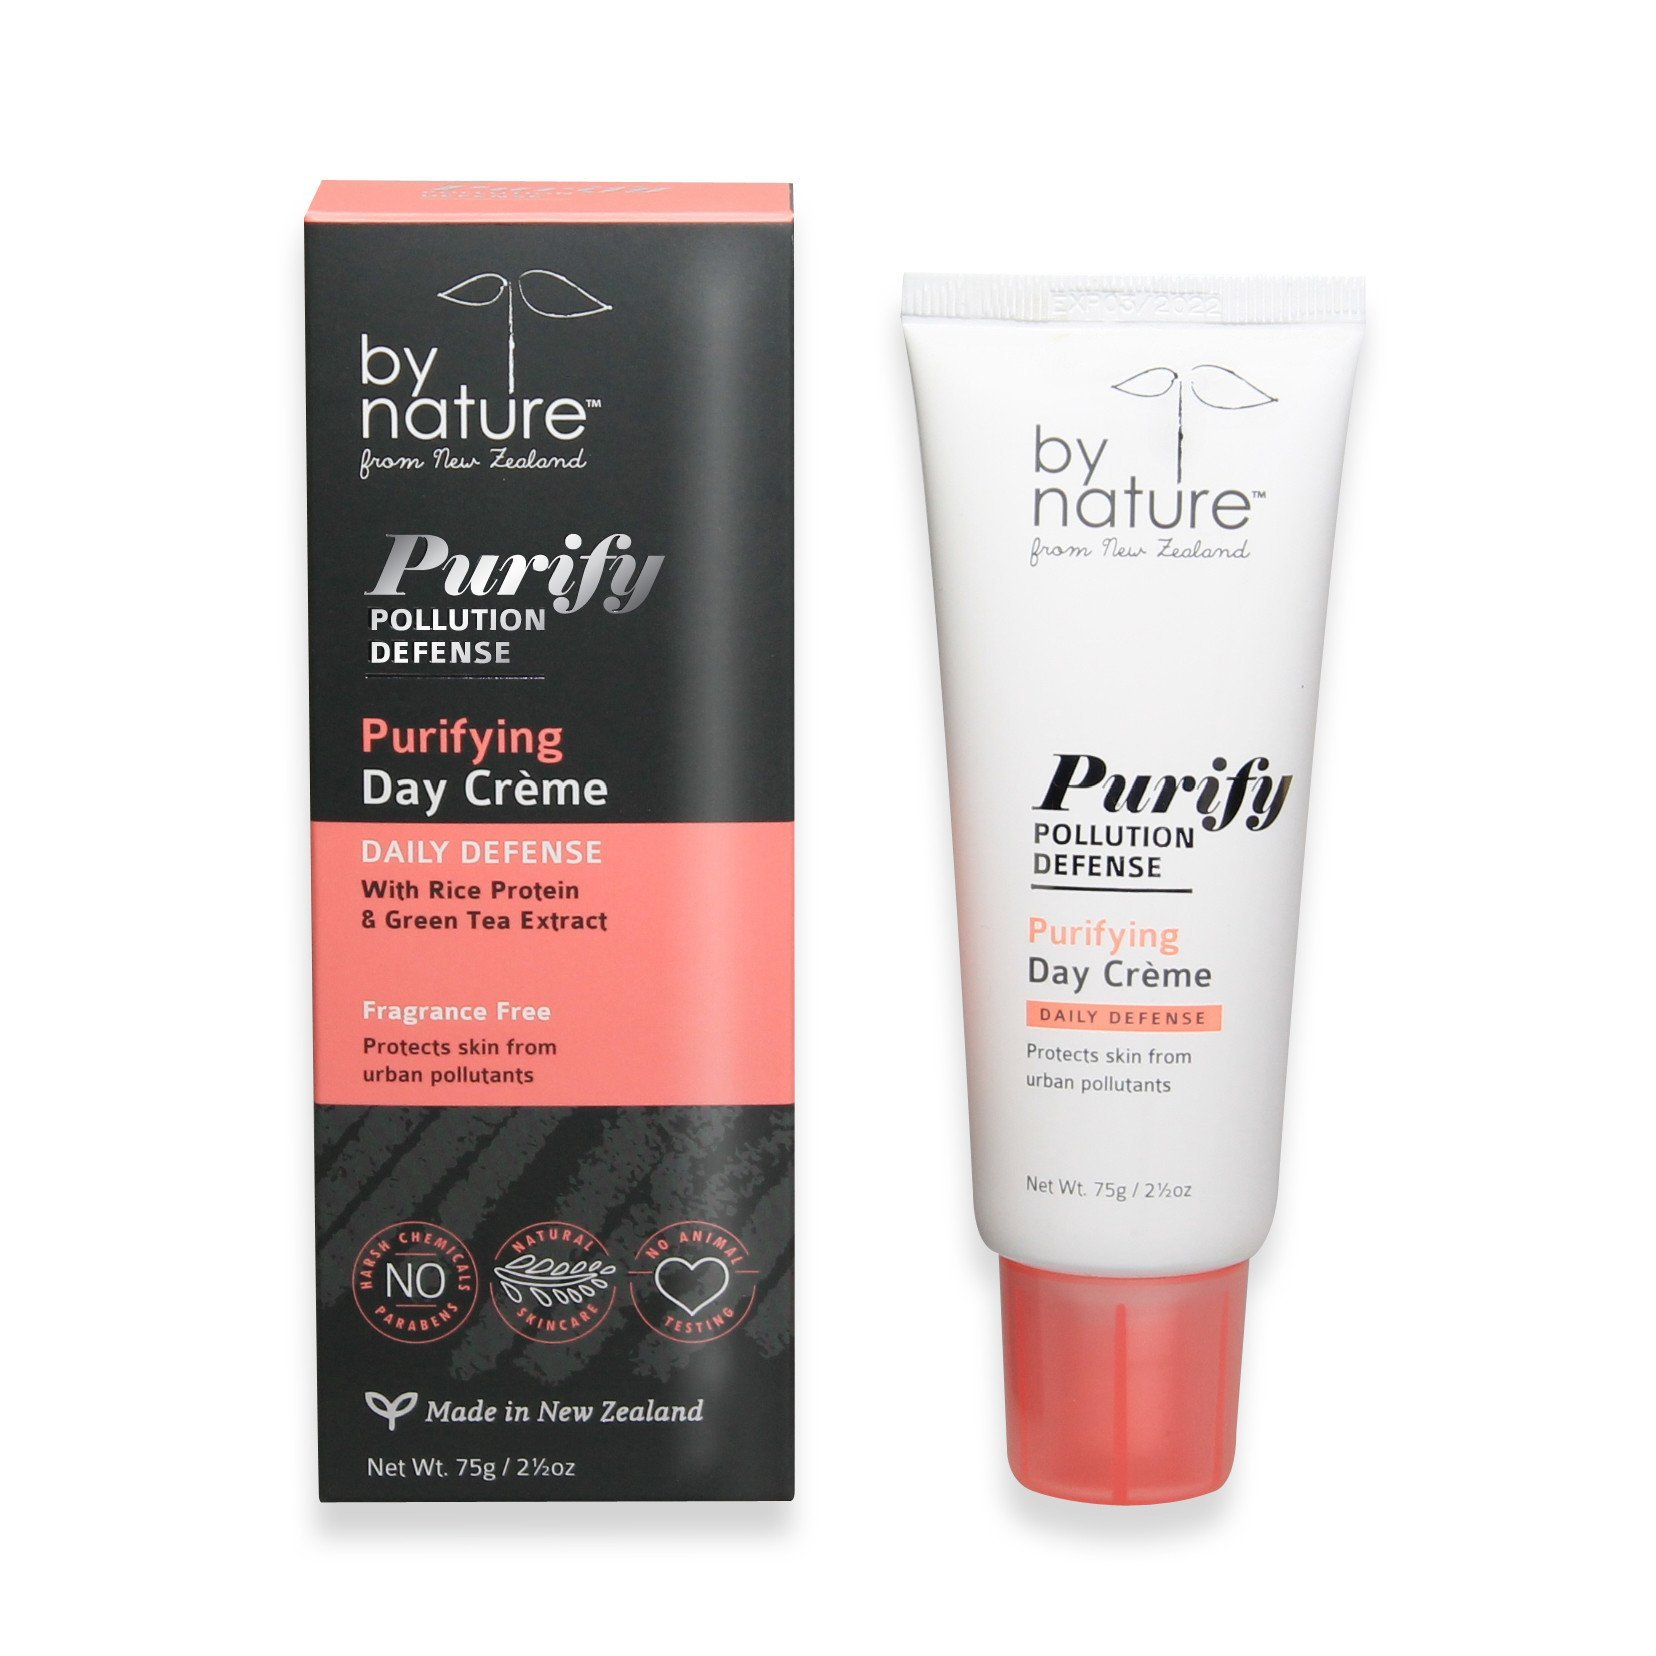 By Nature Purifying Day Creme